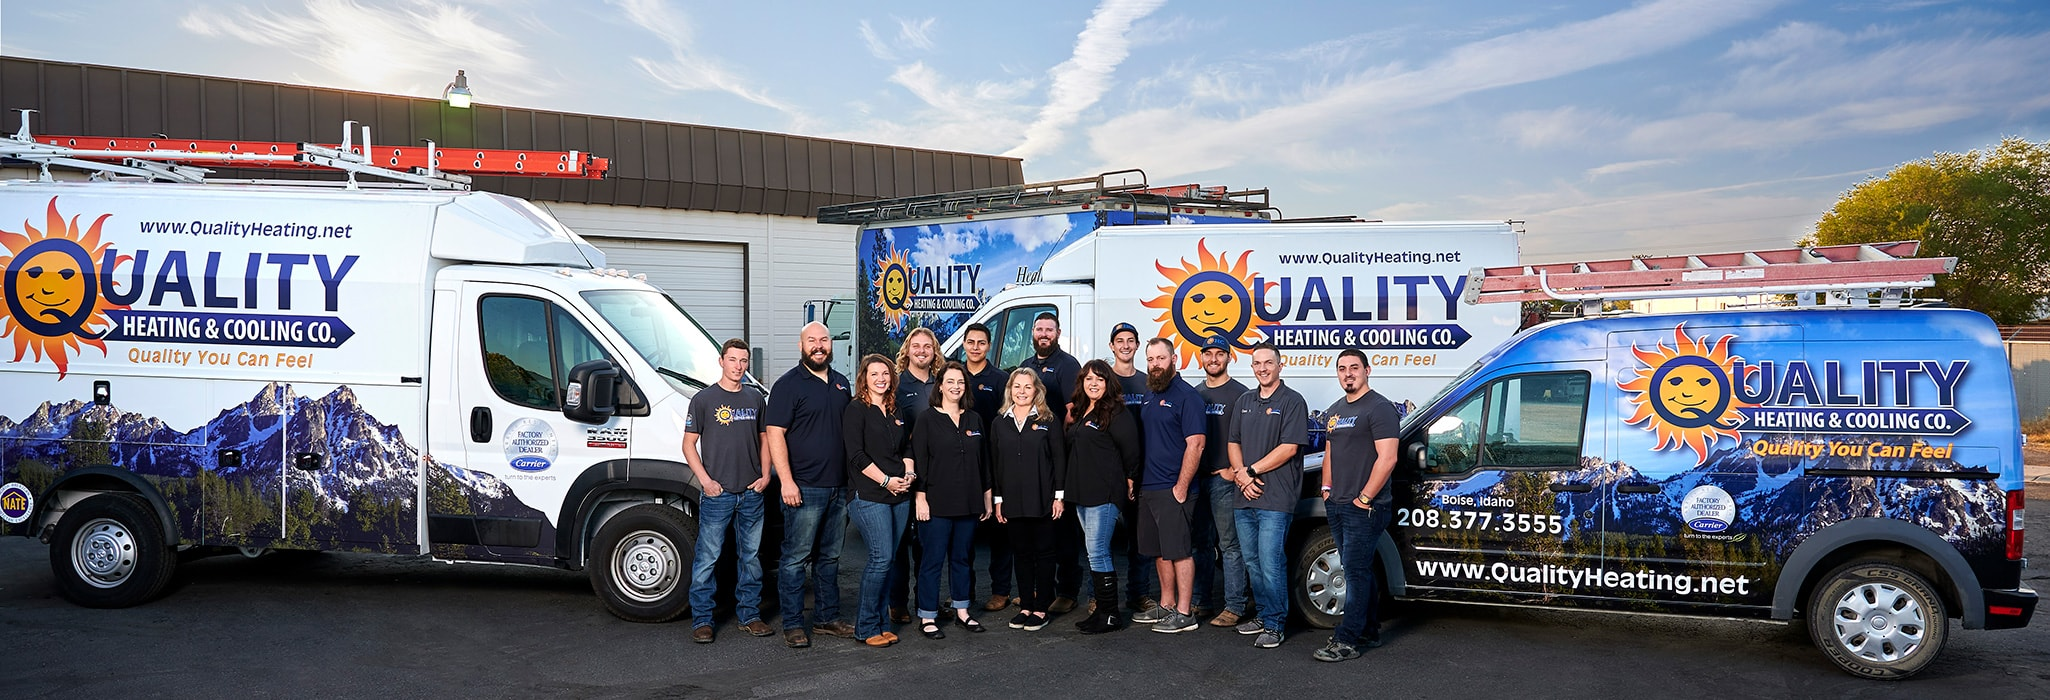 The Quality Heating & Cooling team, standing in front of their three service vans outside.